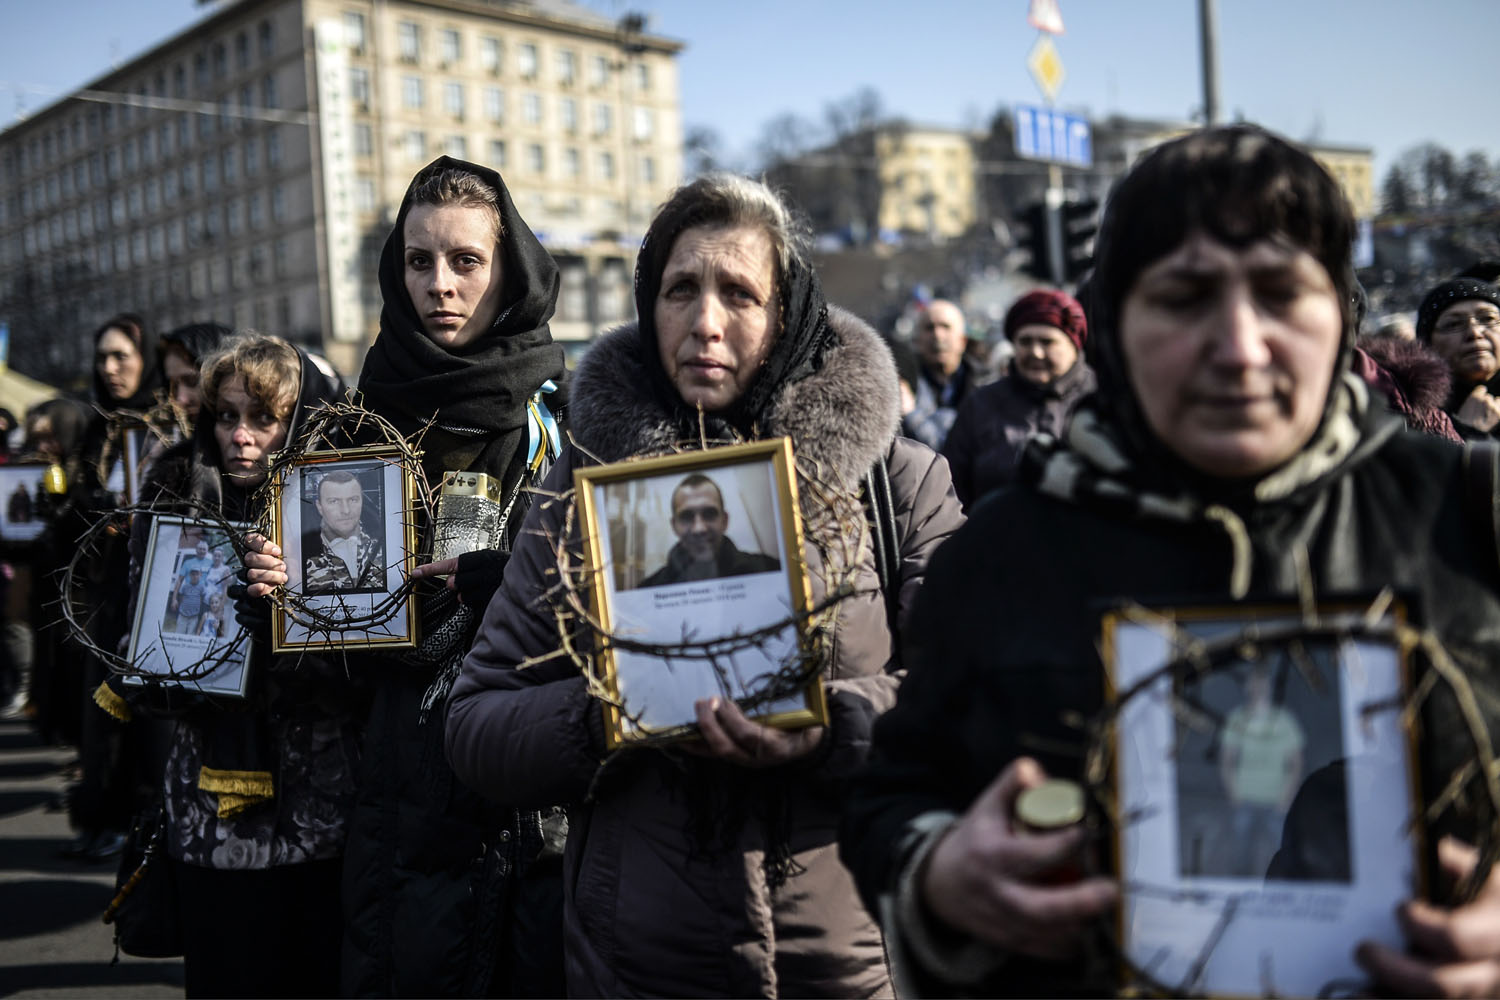 Women hold pictures of protesters who were killed in clashes with police during recent demonstrations as they take part in a commemerative procession in central Kiev, Ukraine, Feb. 26, 2014.